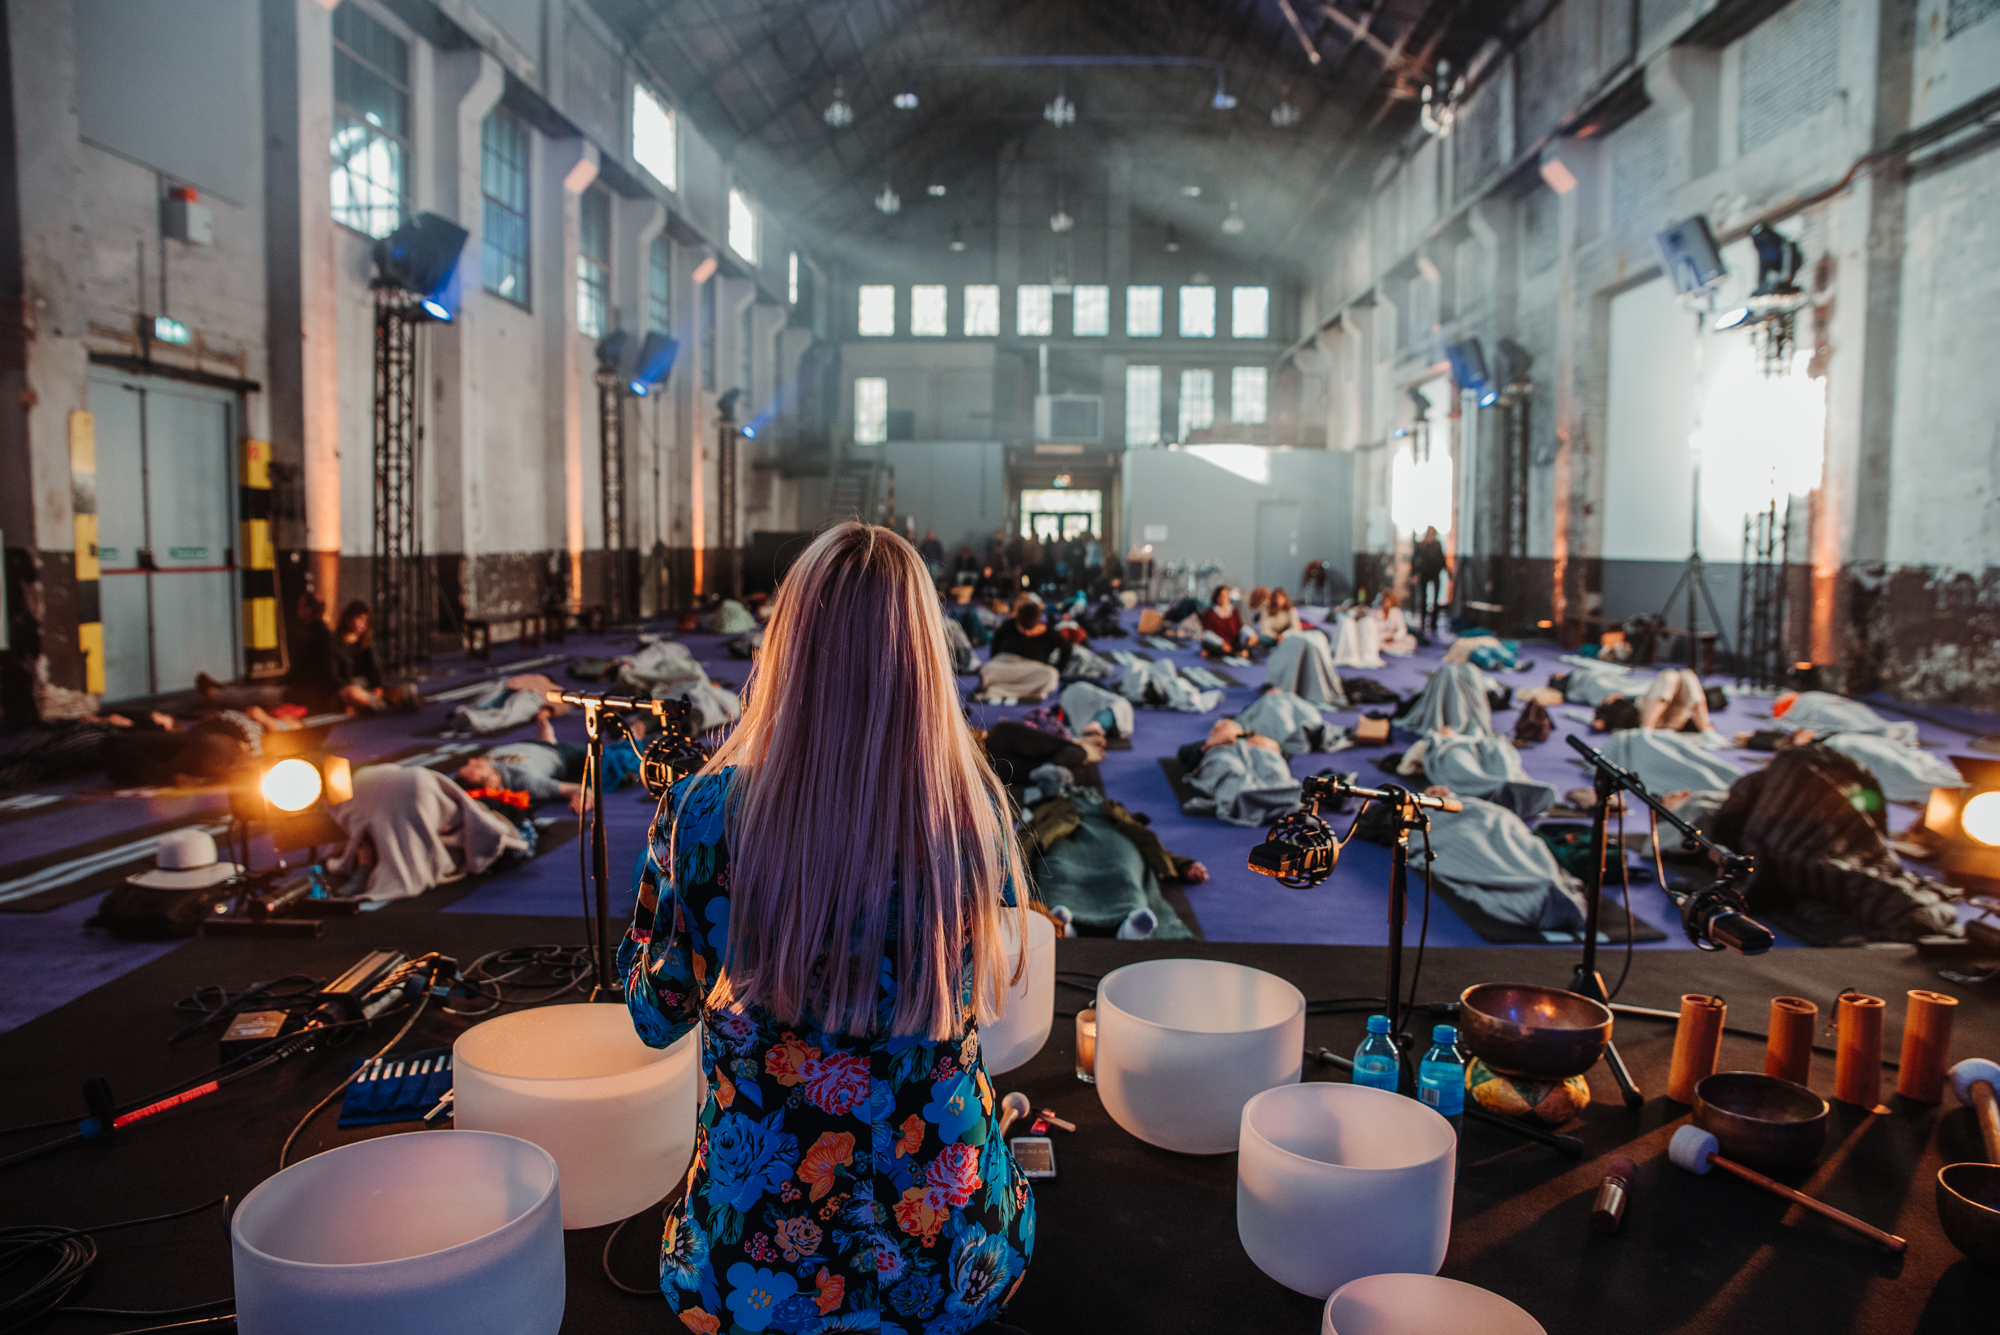 Mass sound meditation at the Happinez Festival 2019